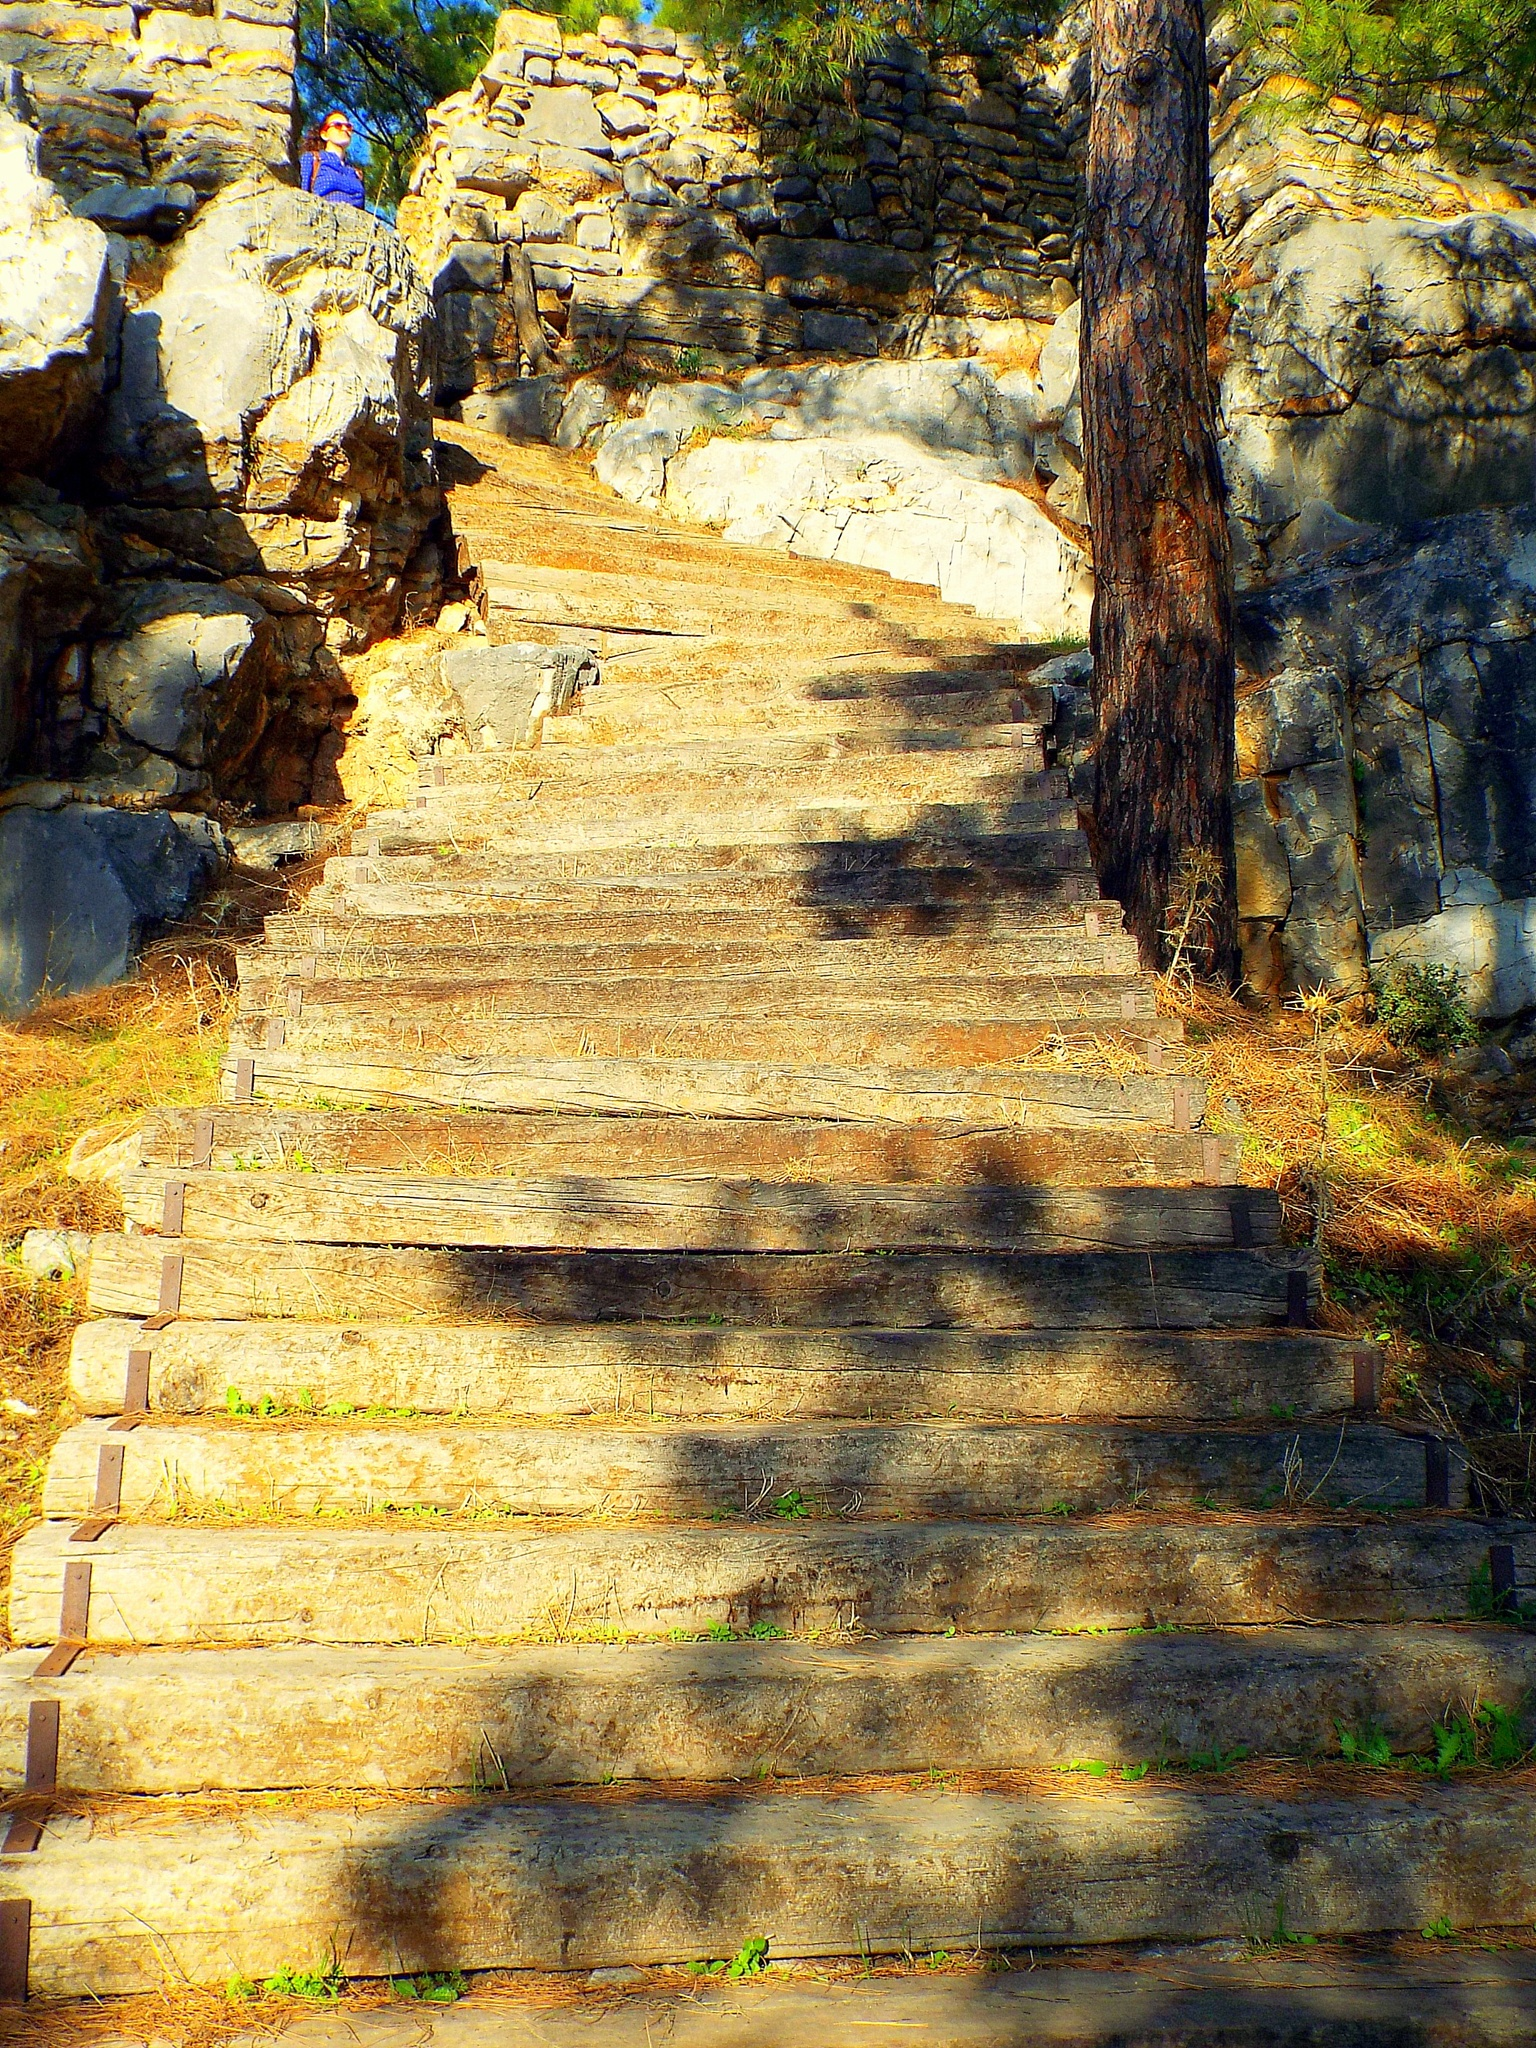 STEPS GOING UP TO PEDASA, ANCIENT CITY, BODRUM/TURKEY by Akin Saner